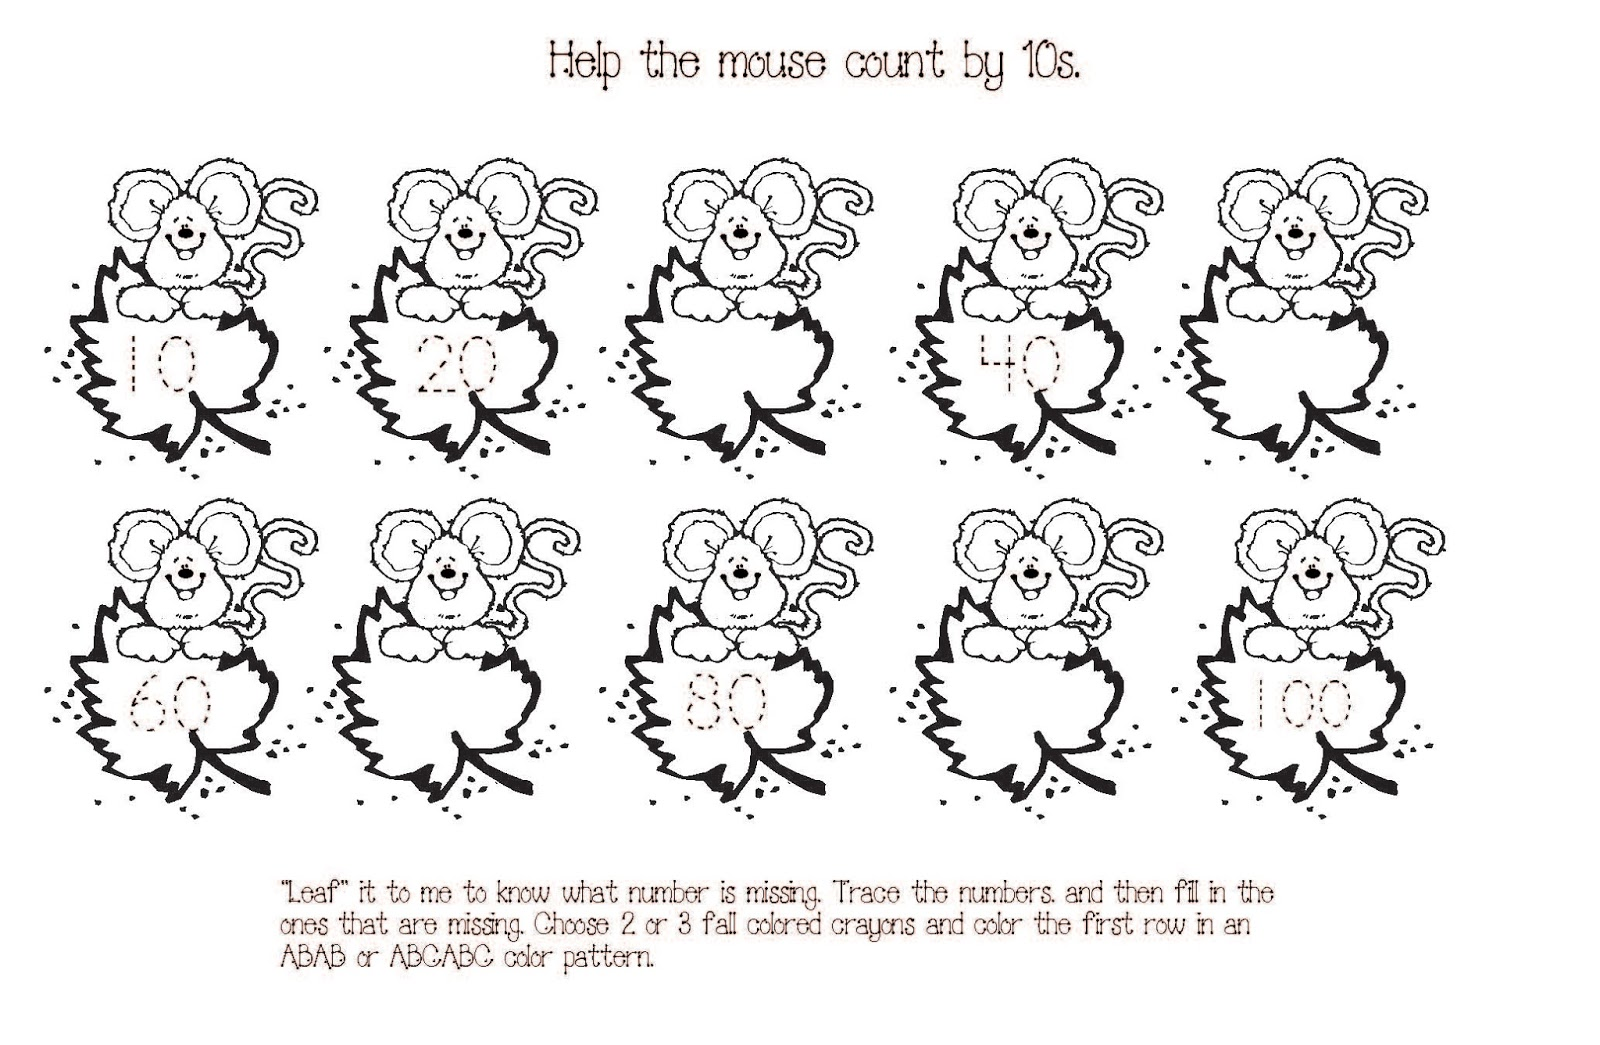 worksheet Count By 10s Worksheet counting by 10s worksheet free worksheets library download and cl ssroom freebies 15 le f med m th w ksheets